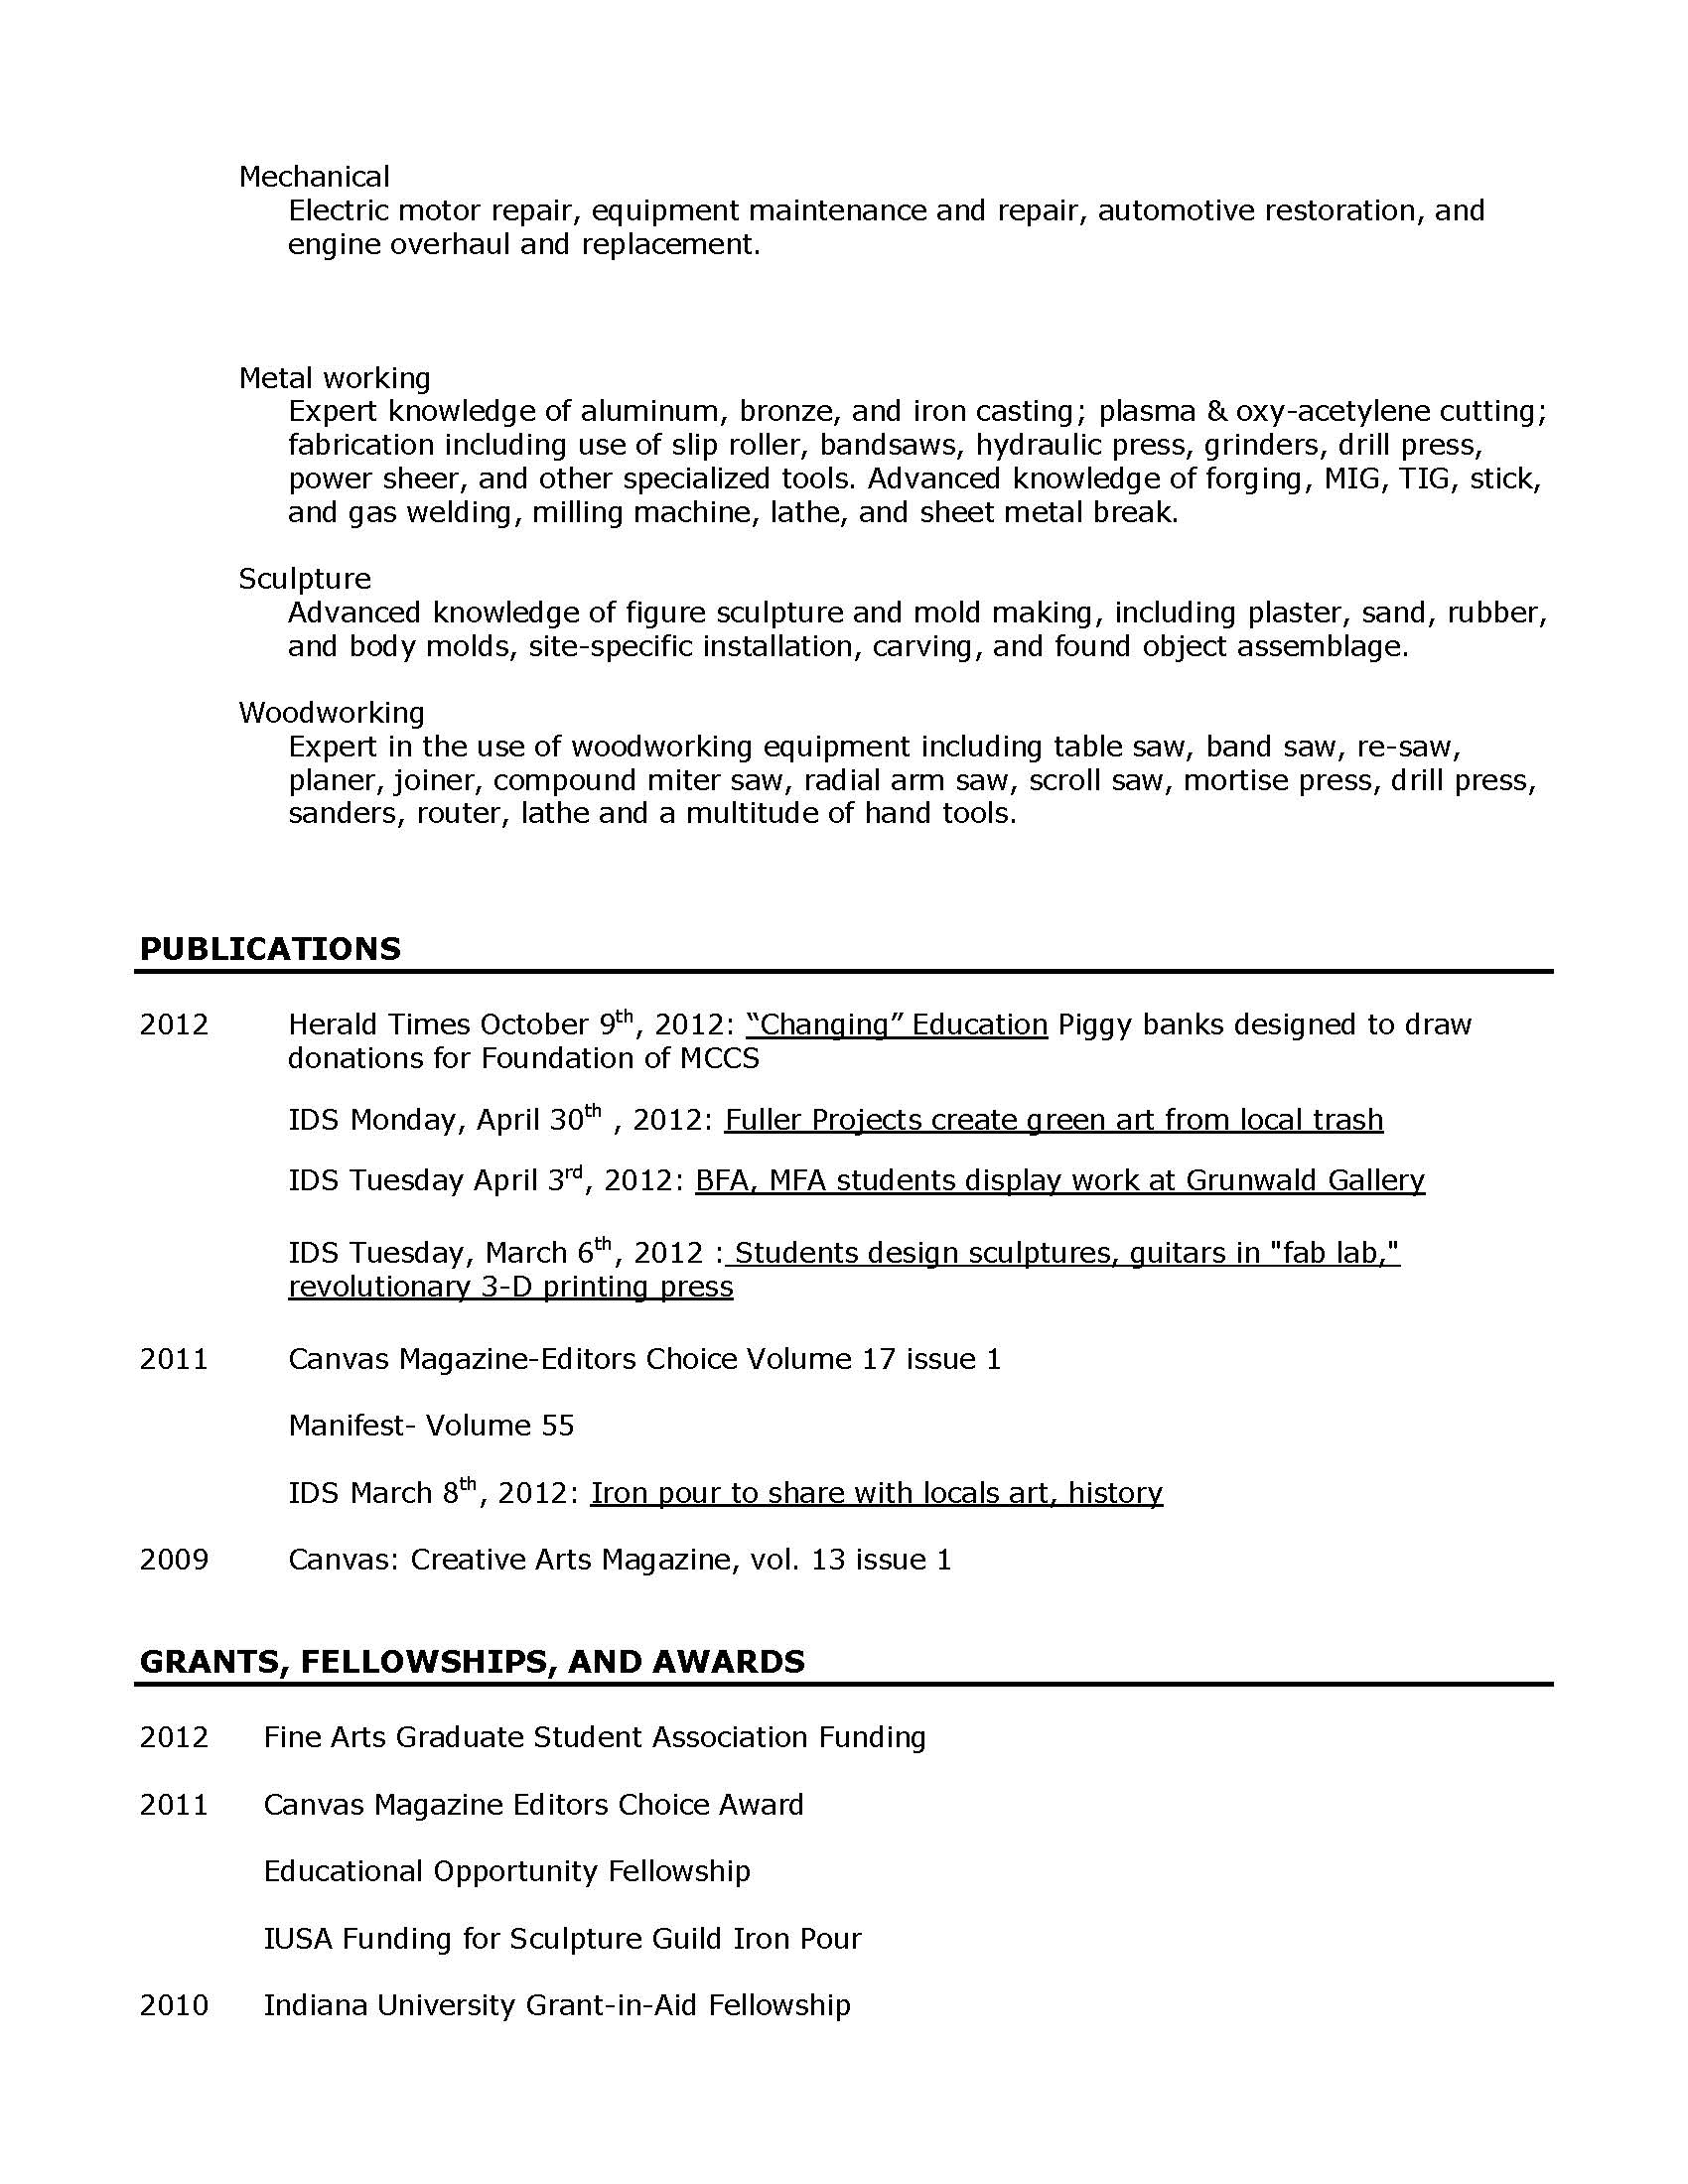 freelance writer editor resume samples visualcv resume samples